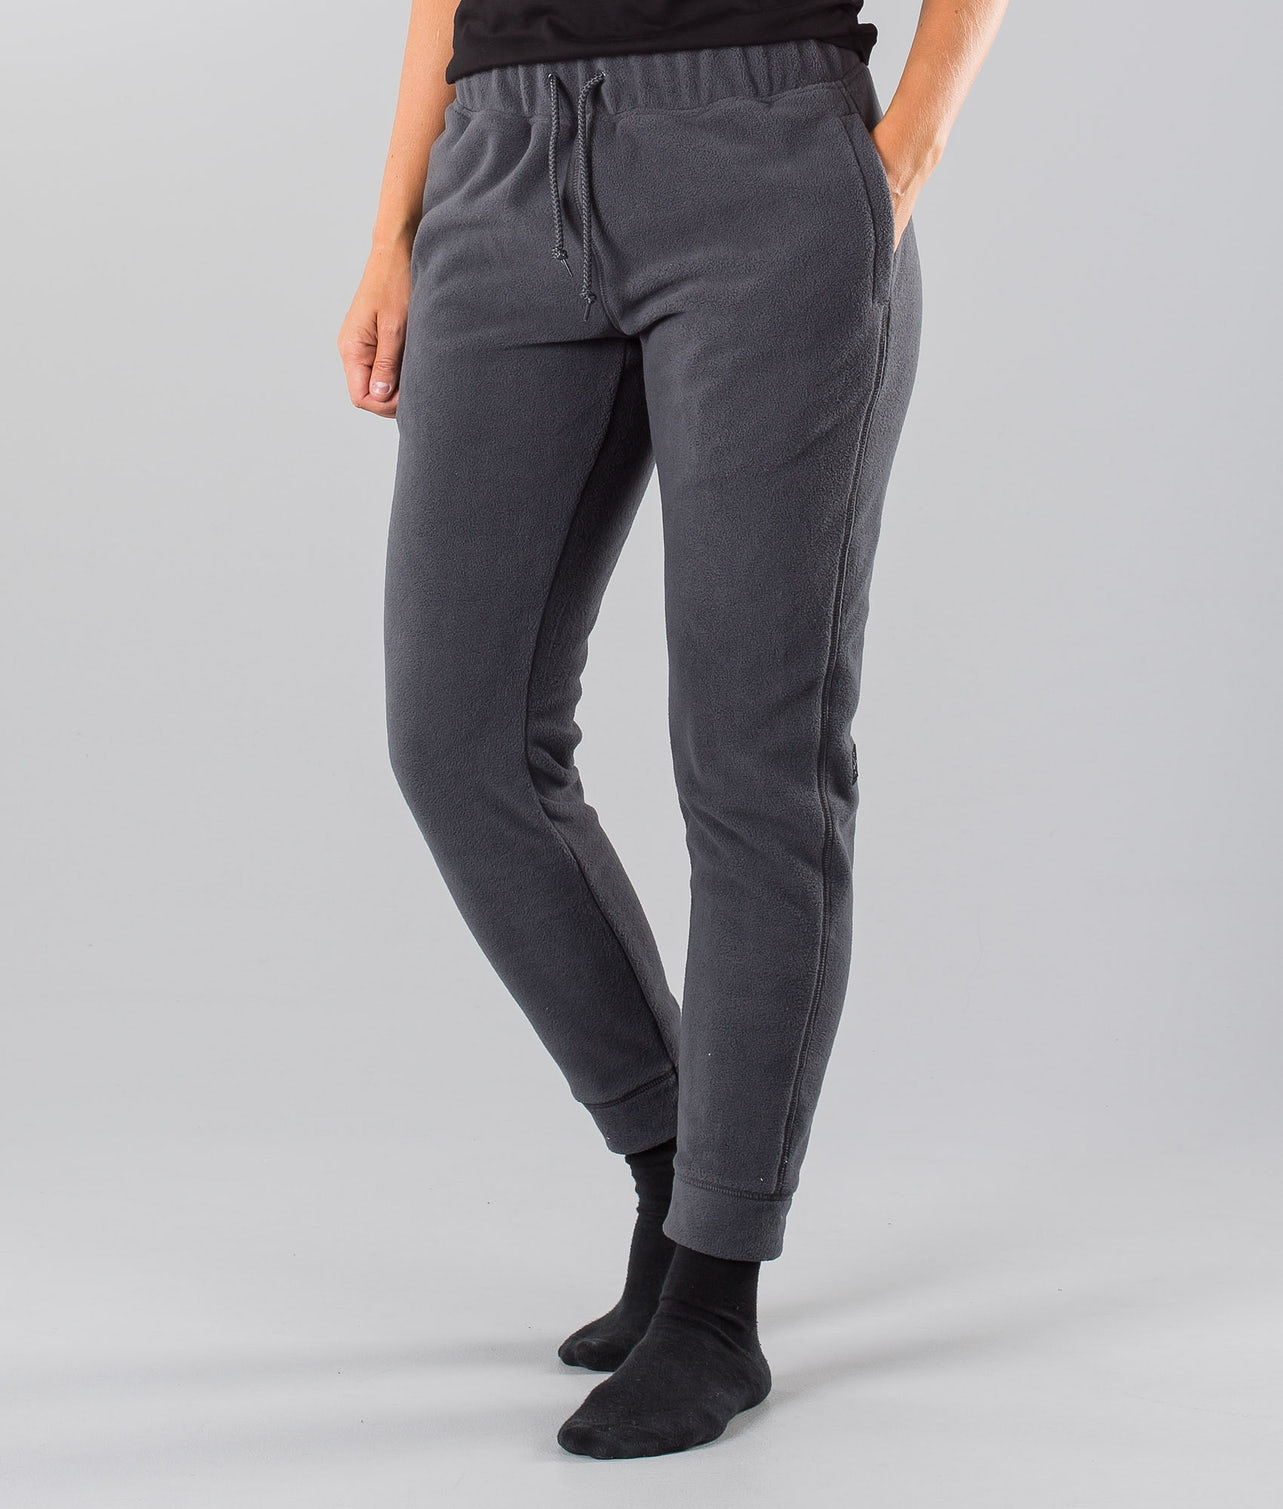 Buy Cozy Pants from Dope at Ridestore.com - Always free shipping, free returns and 30 days money back guarantee